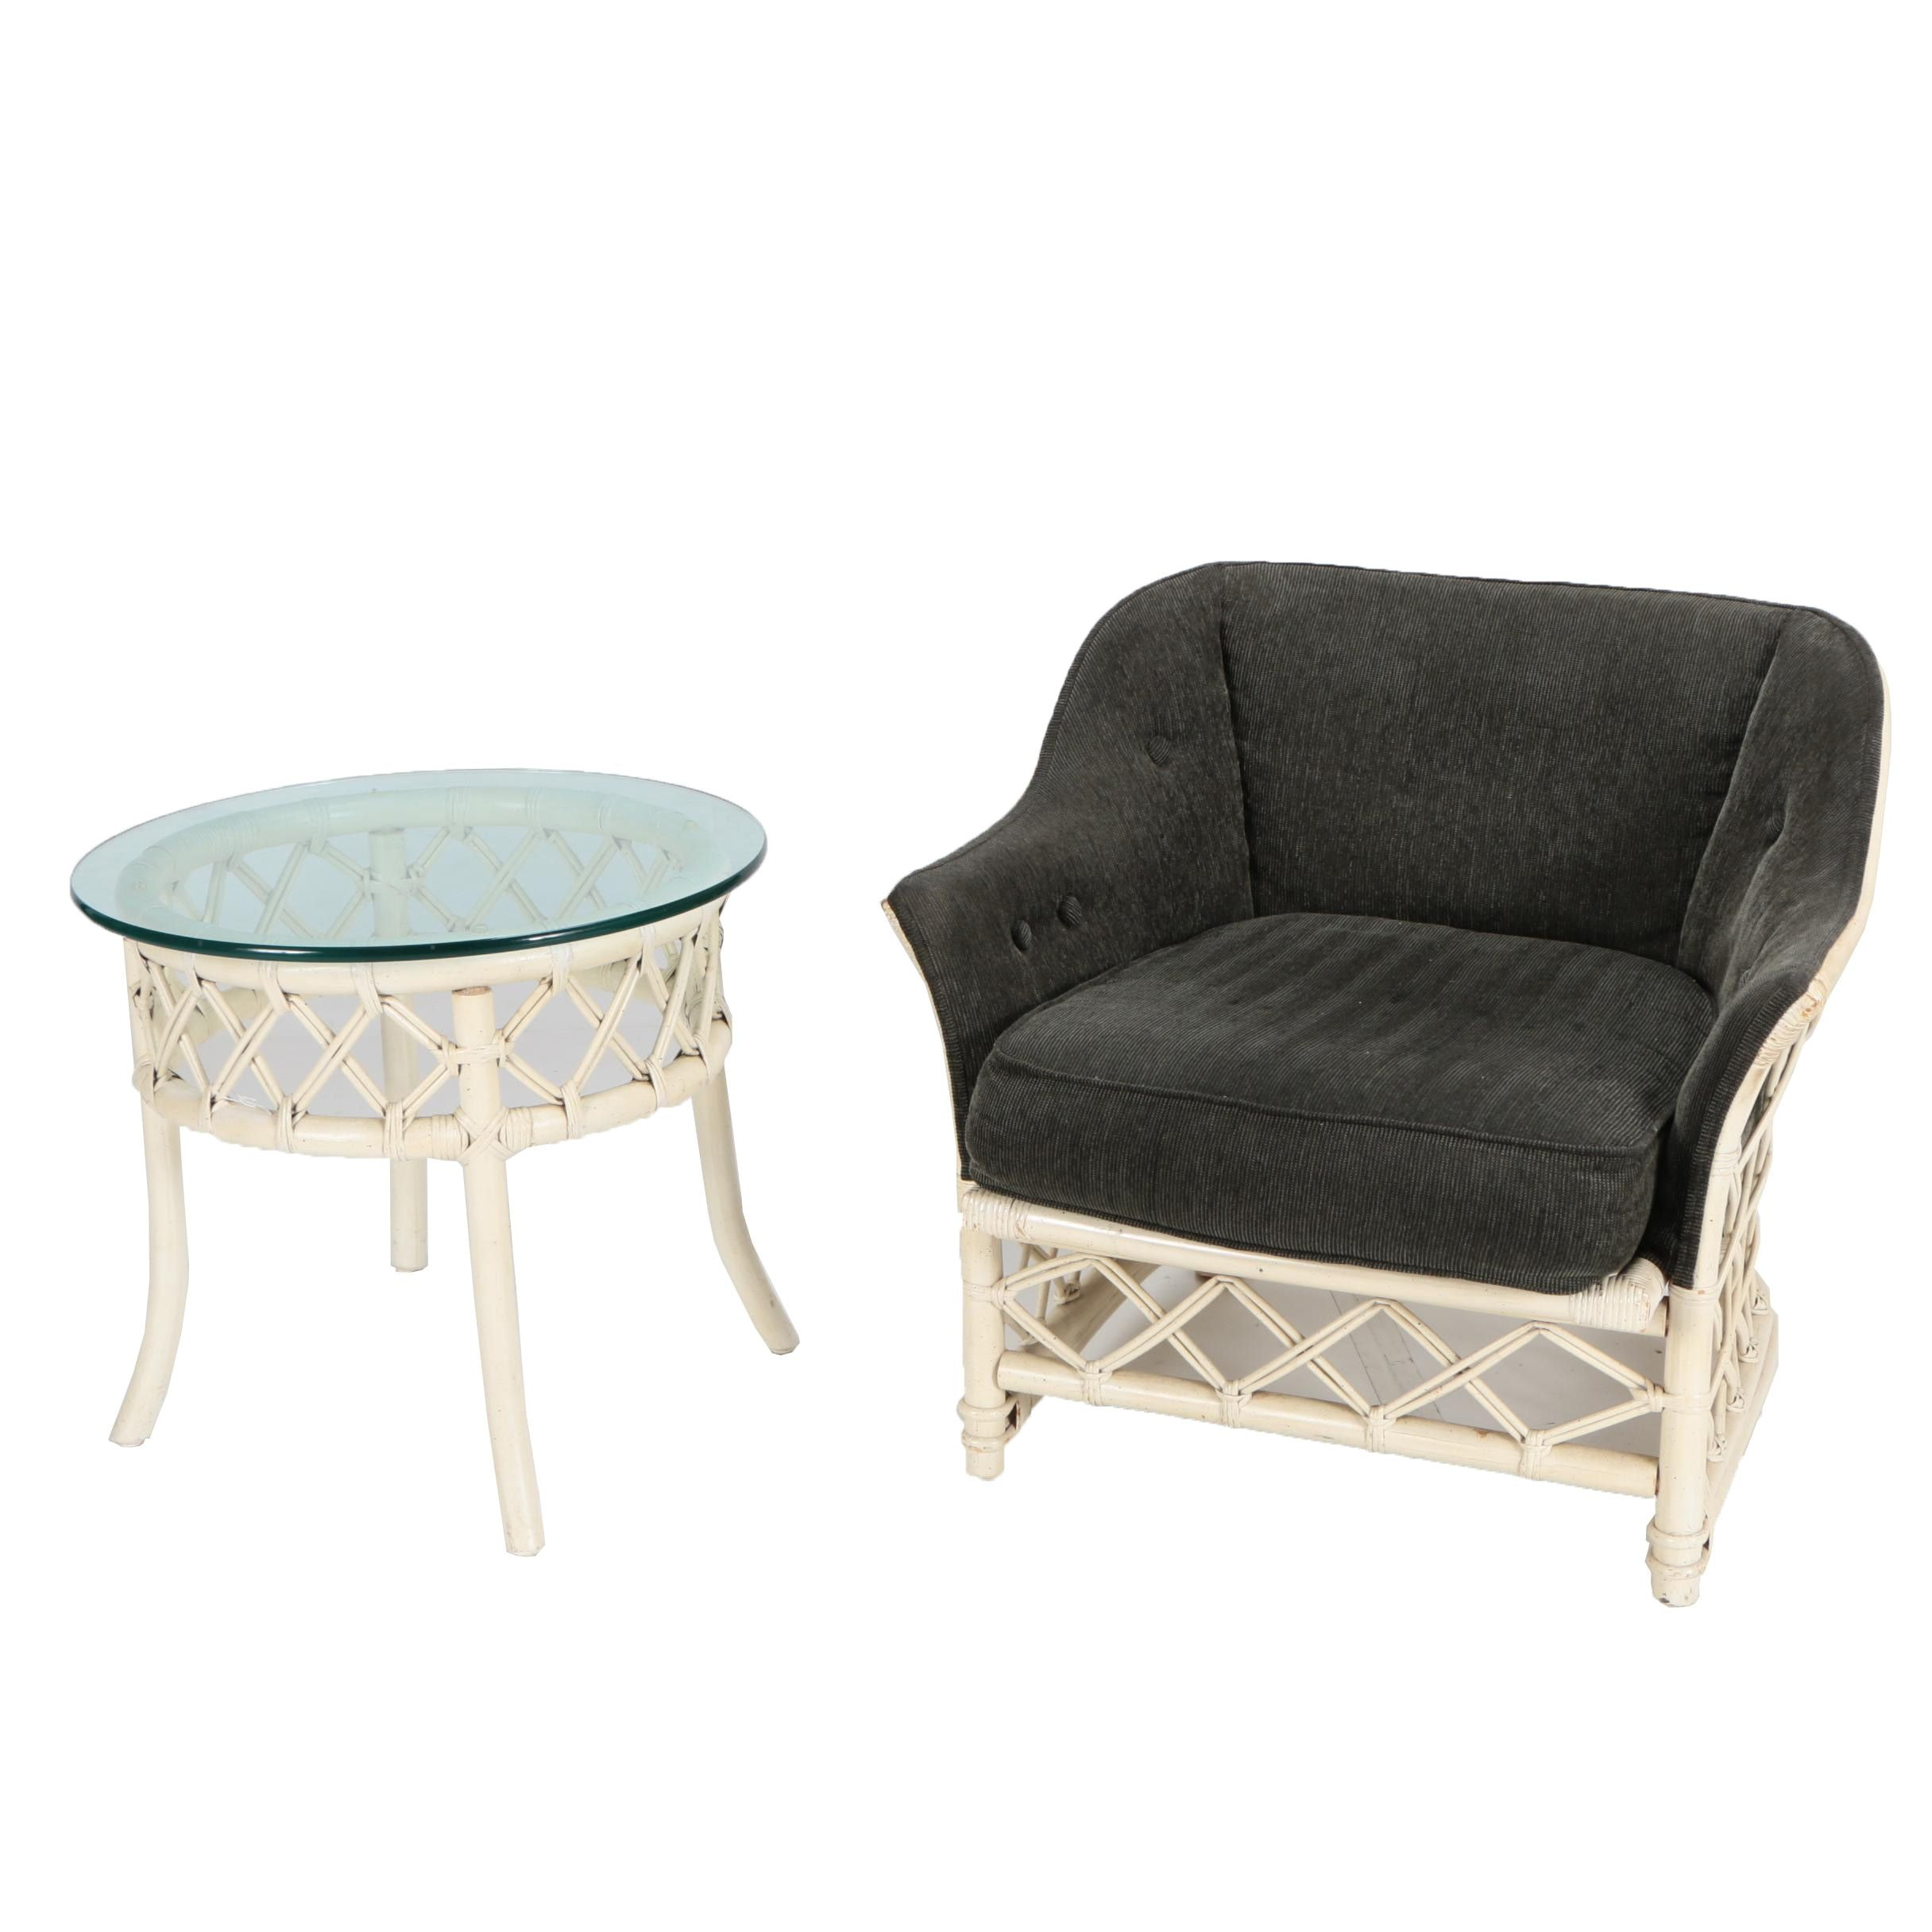 Painted Rattan Armchair Chair and Side Table